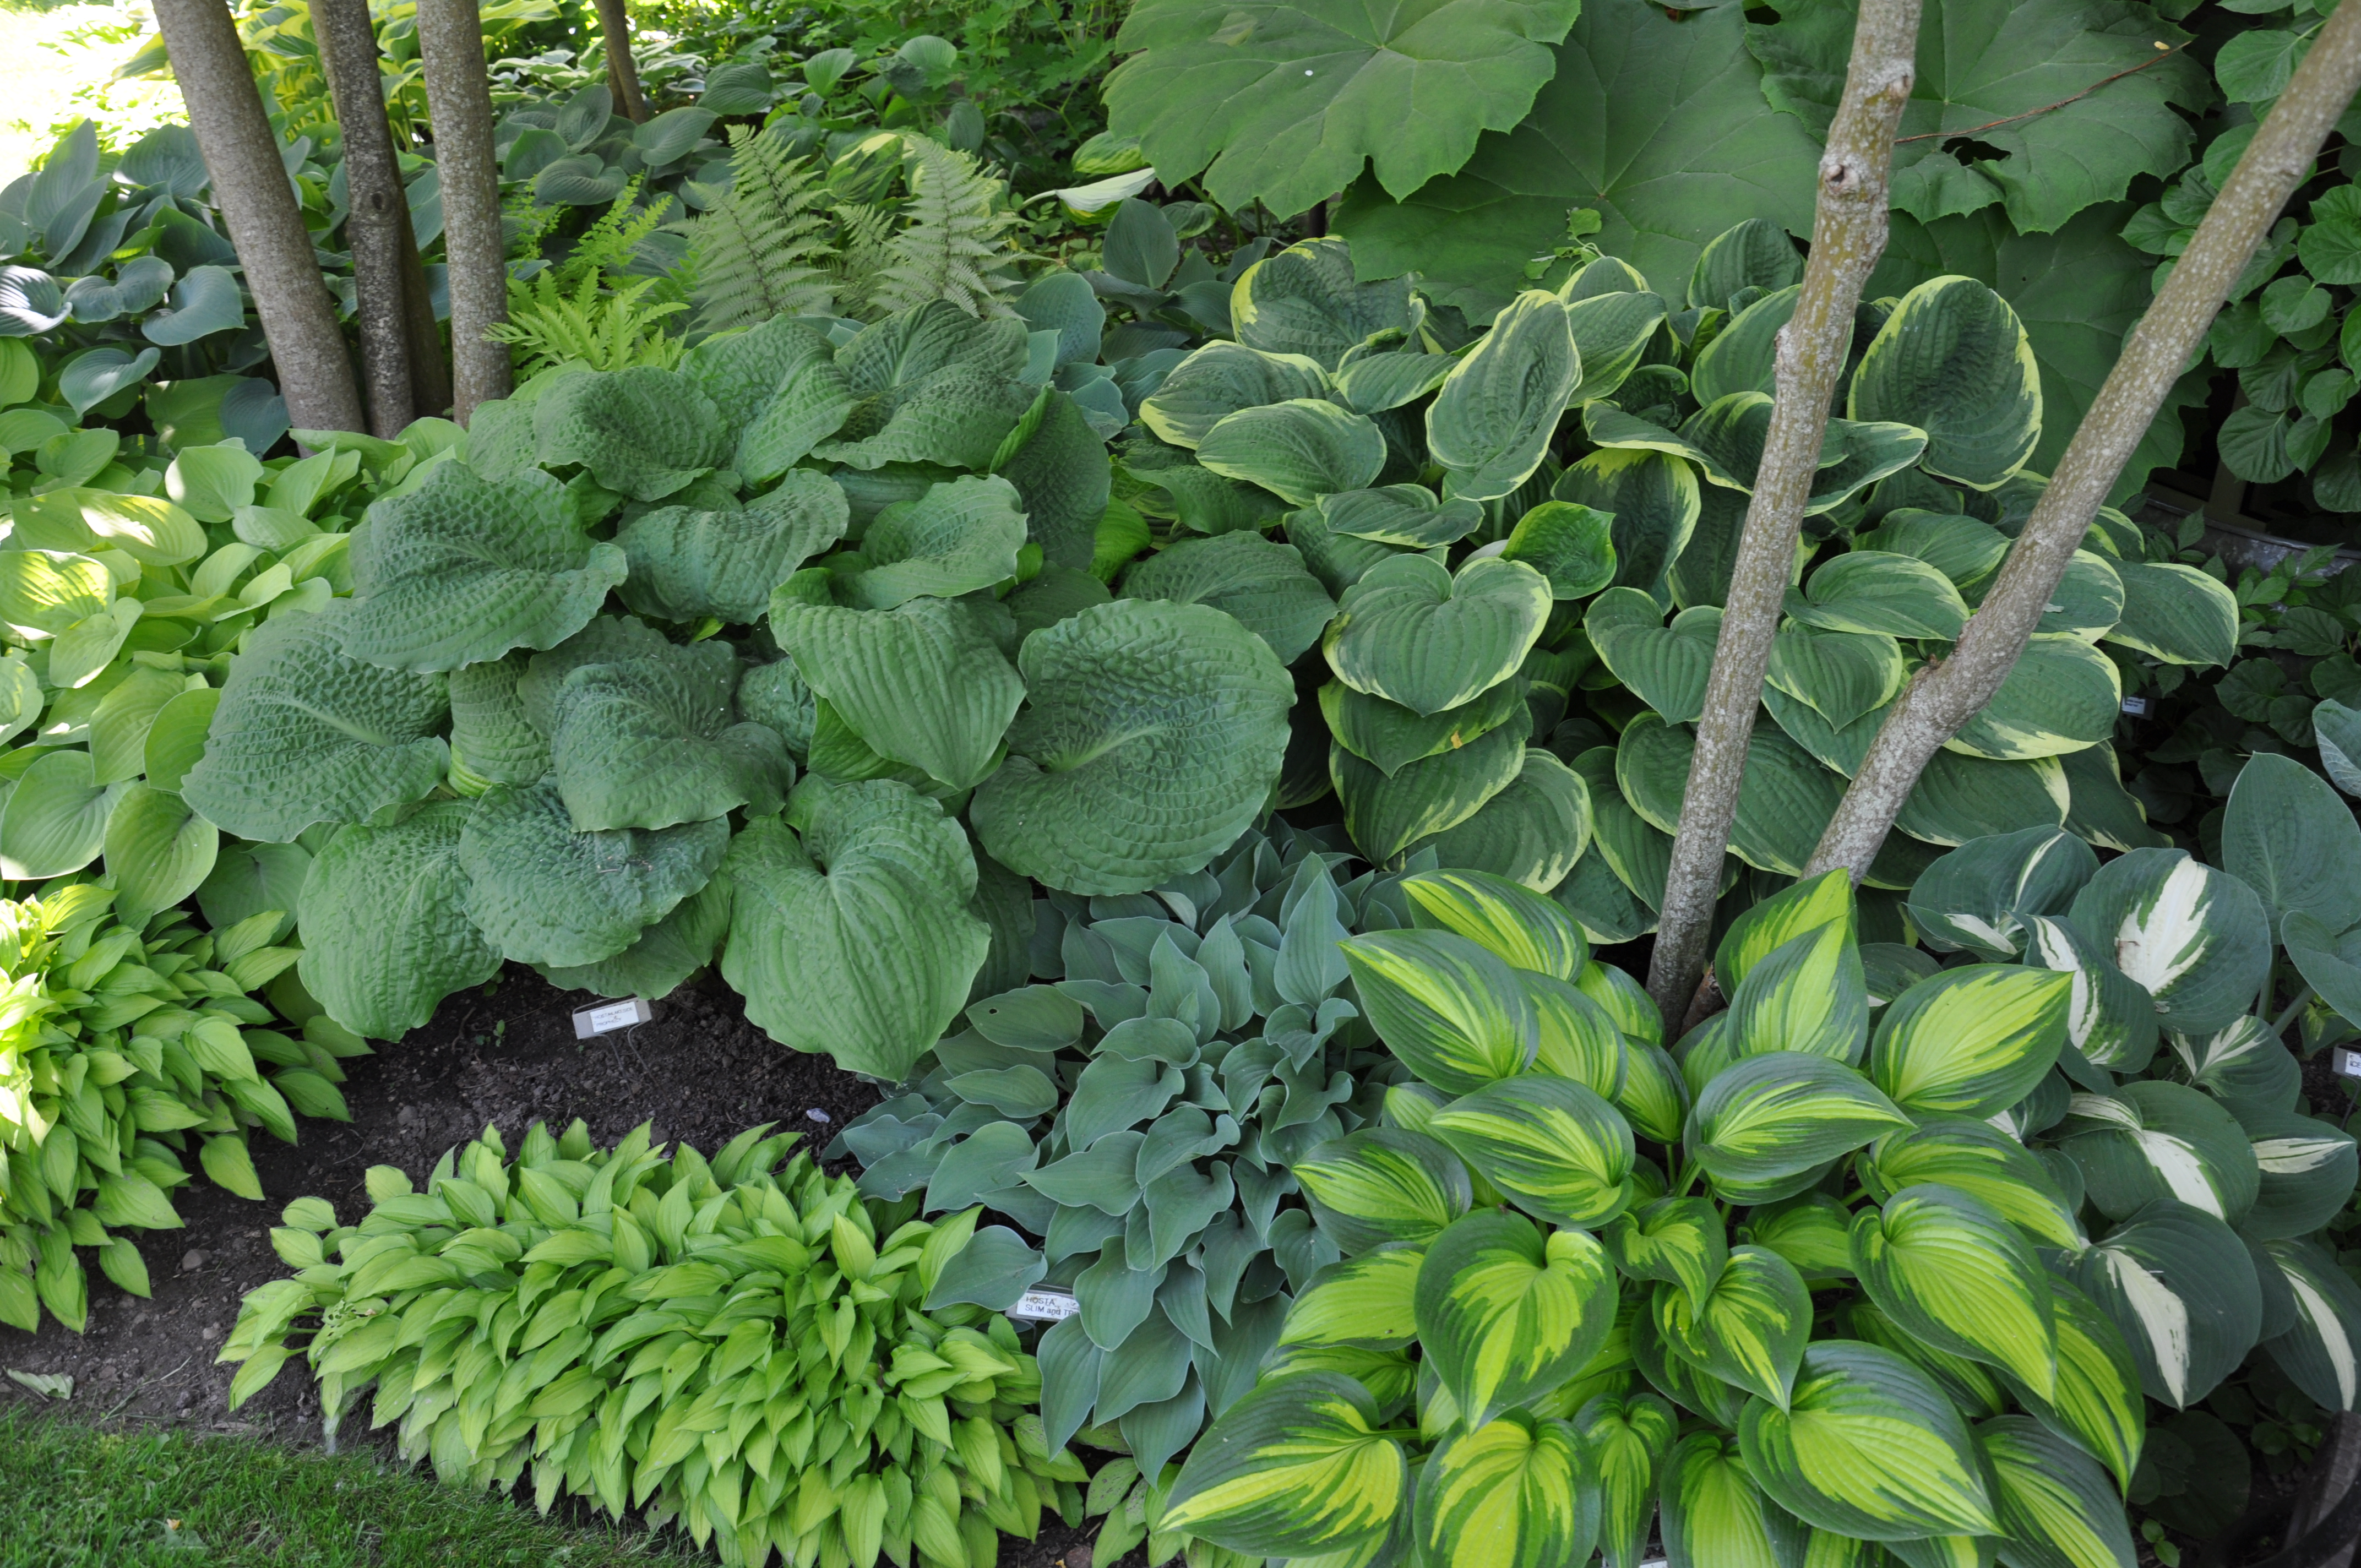 Hostas with different leaf textures